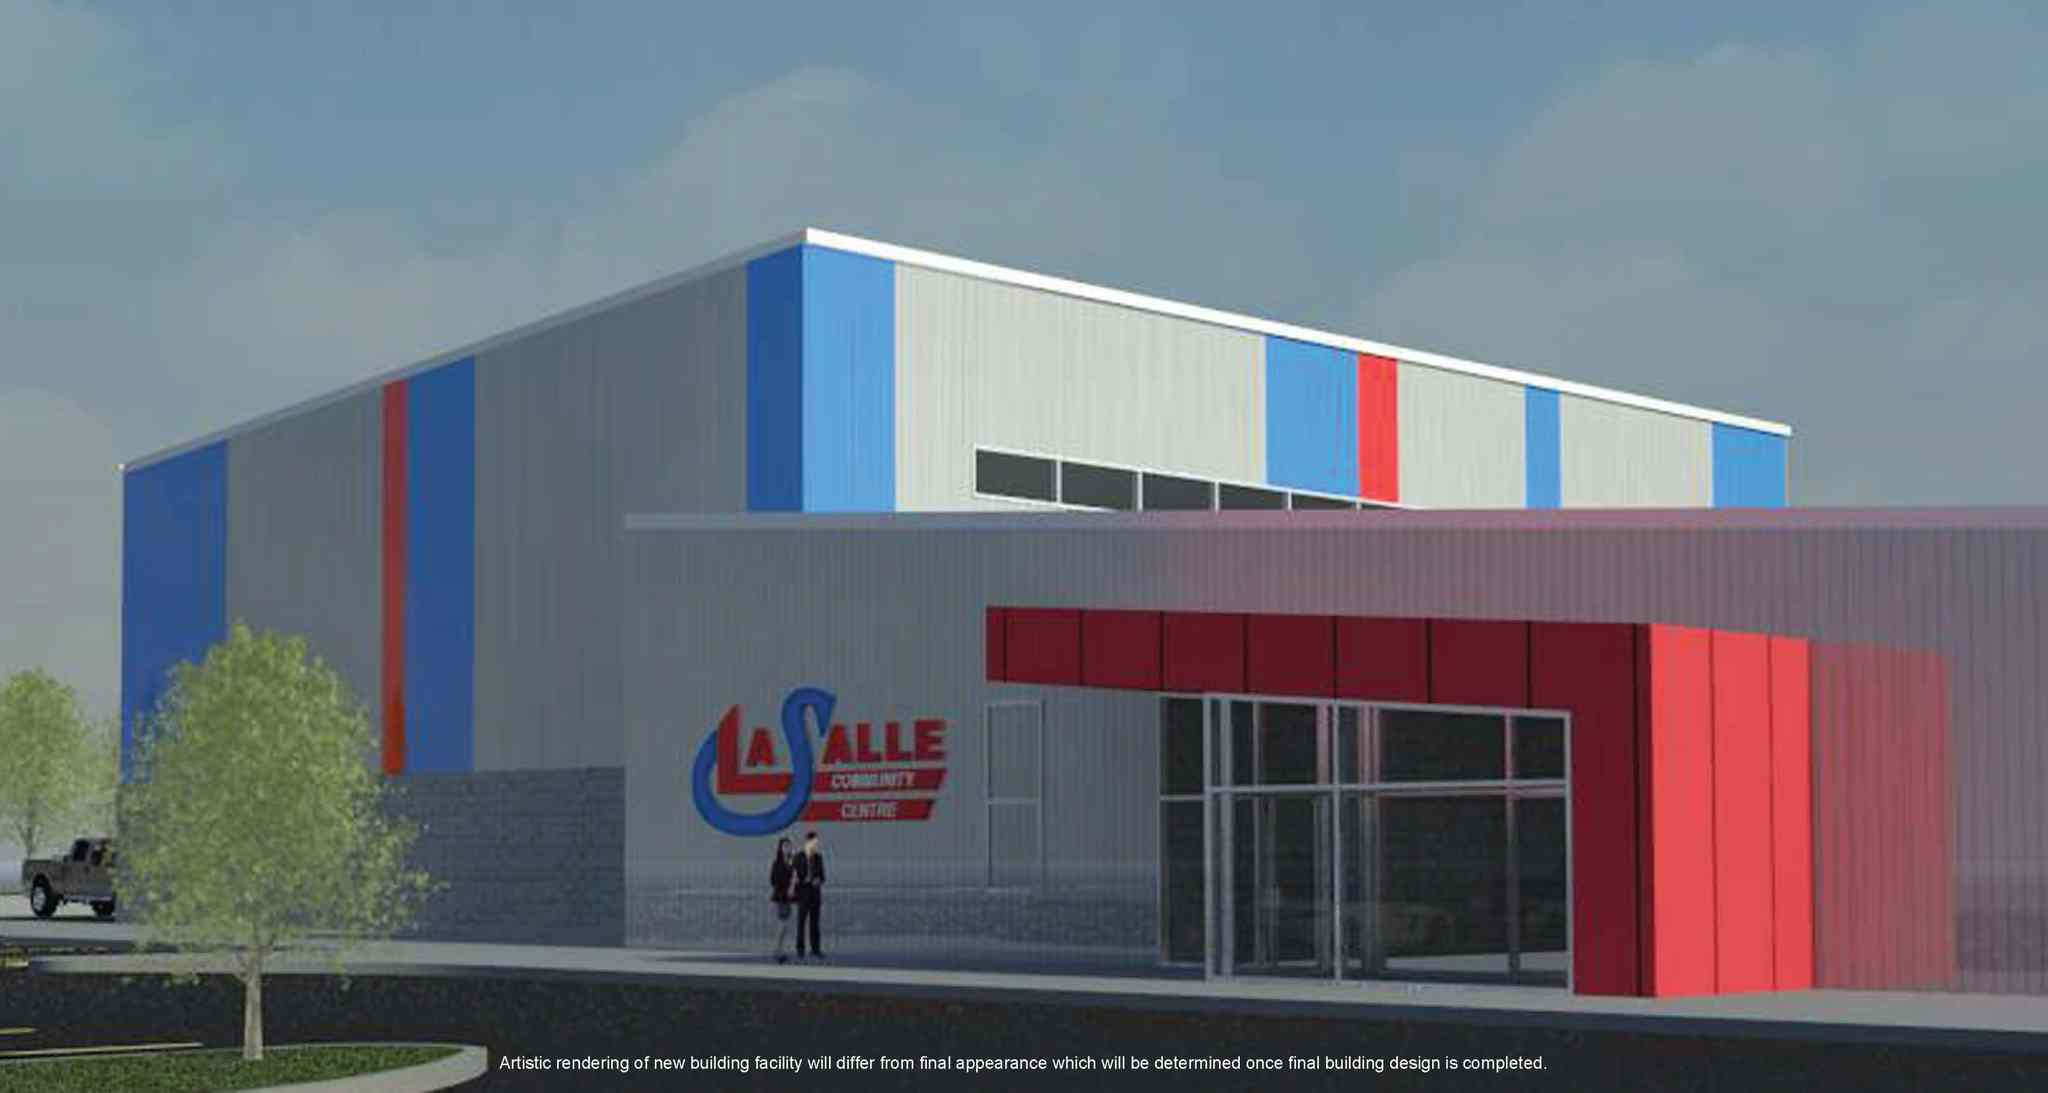 This architect's drawing shows the new La Salle Community Centre, due to open in late January 2014.